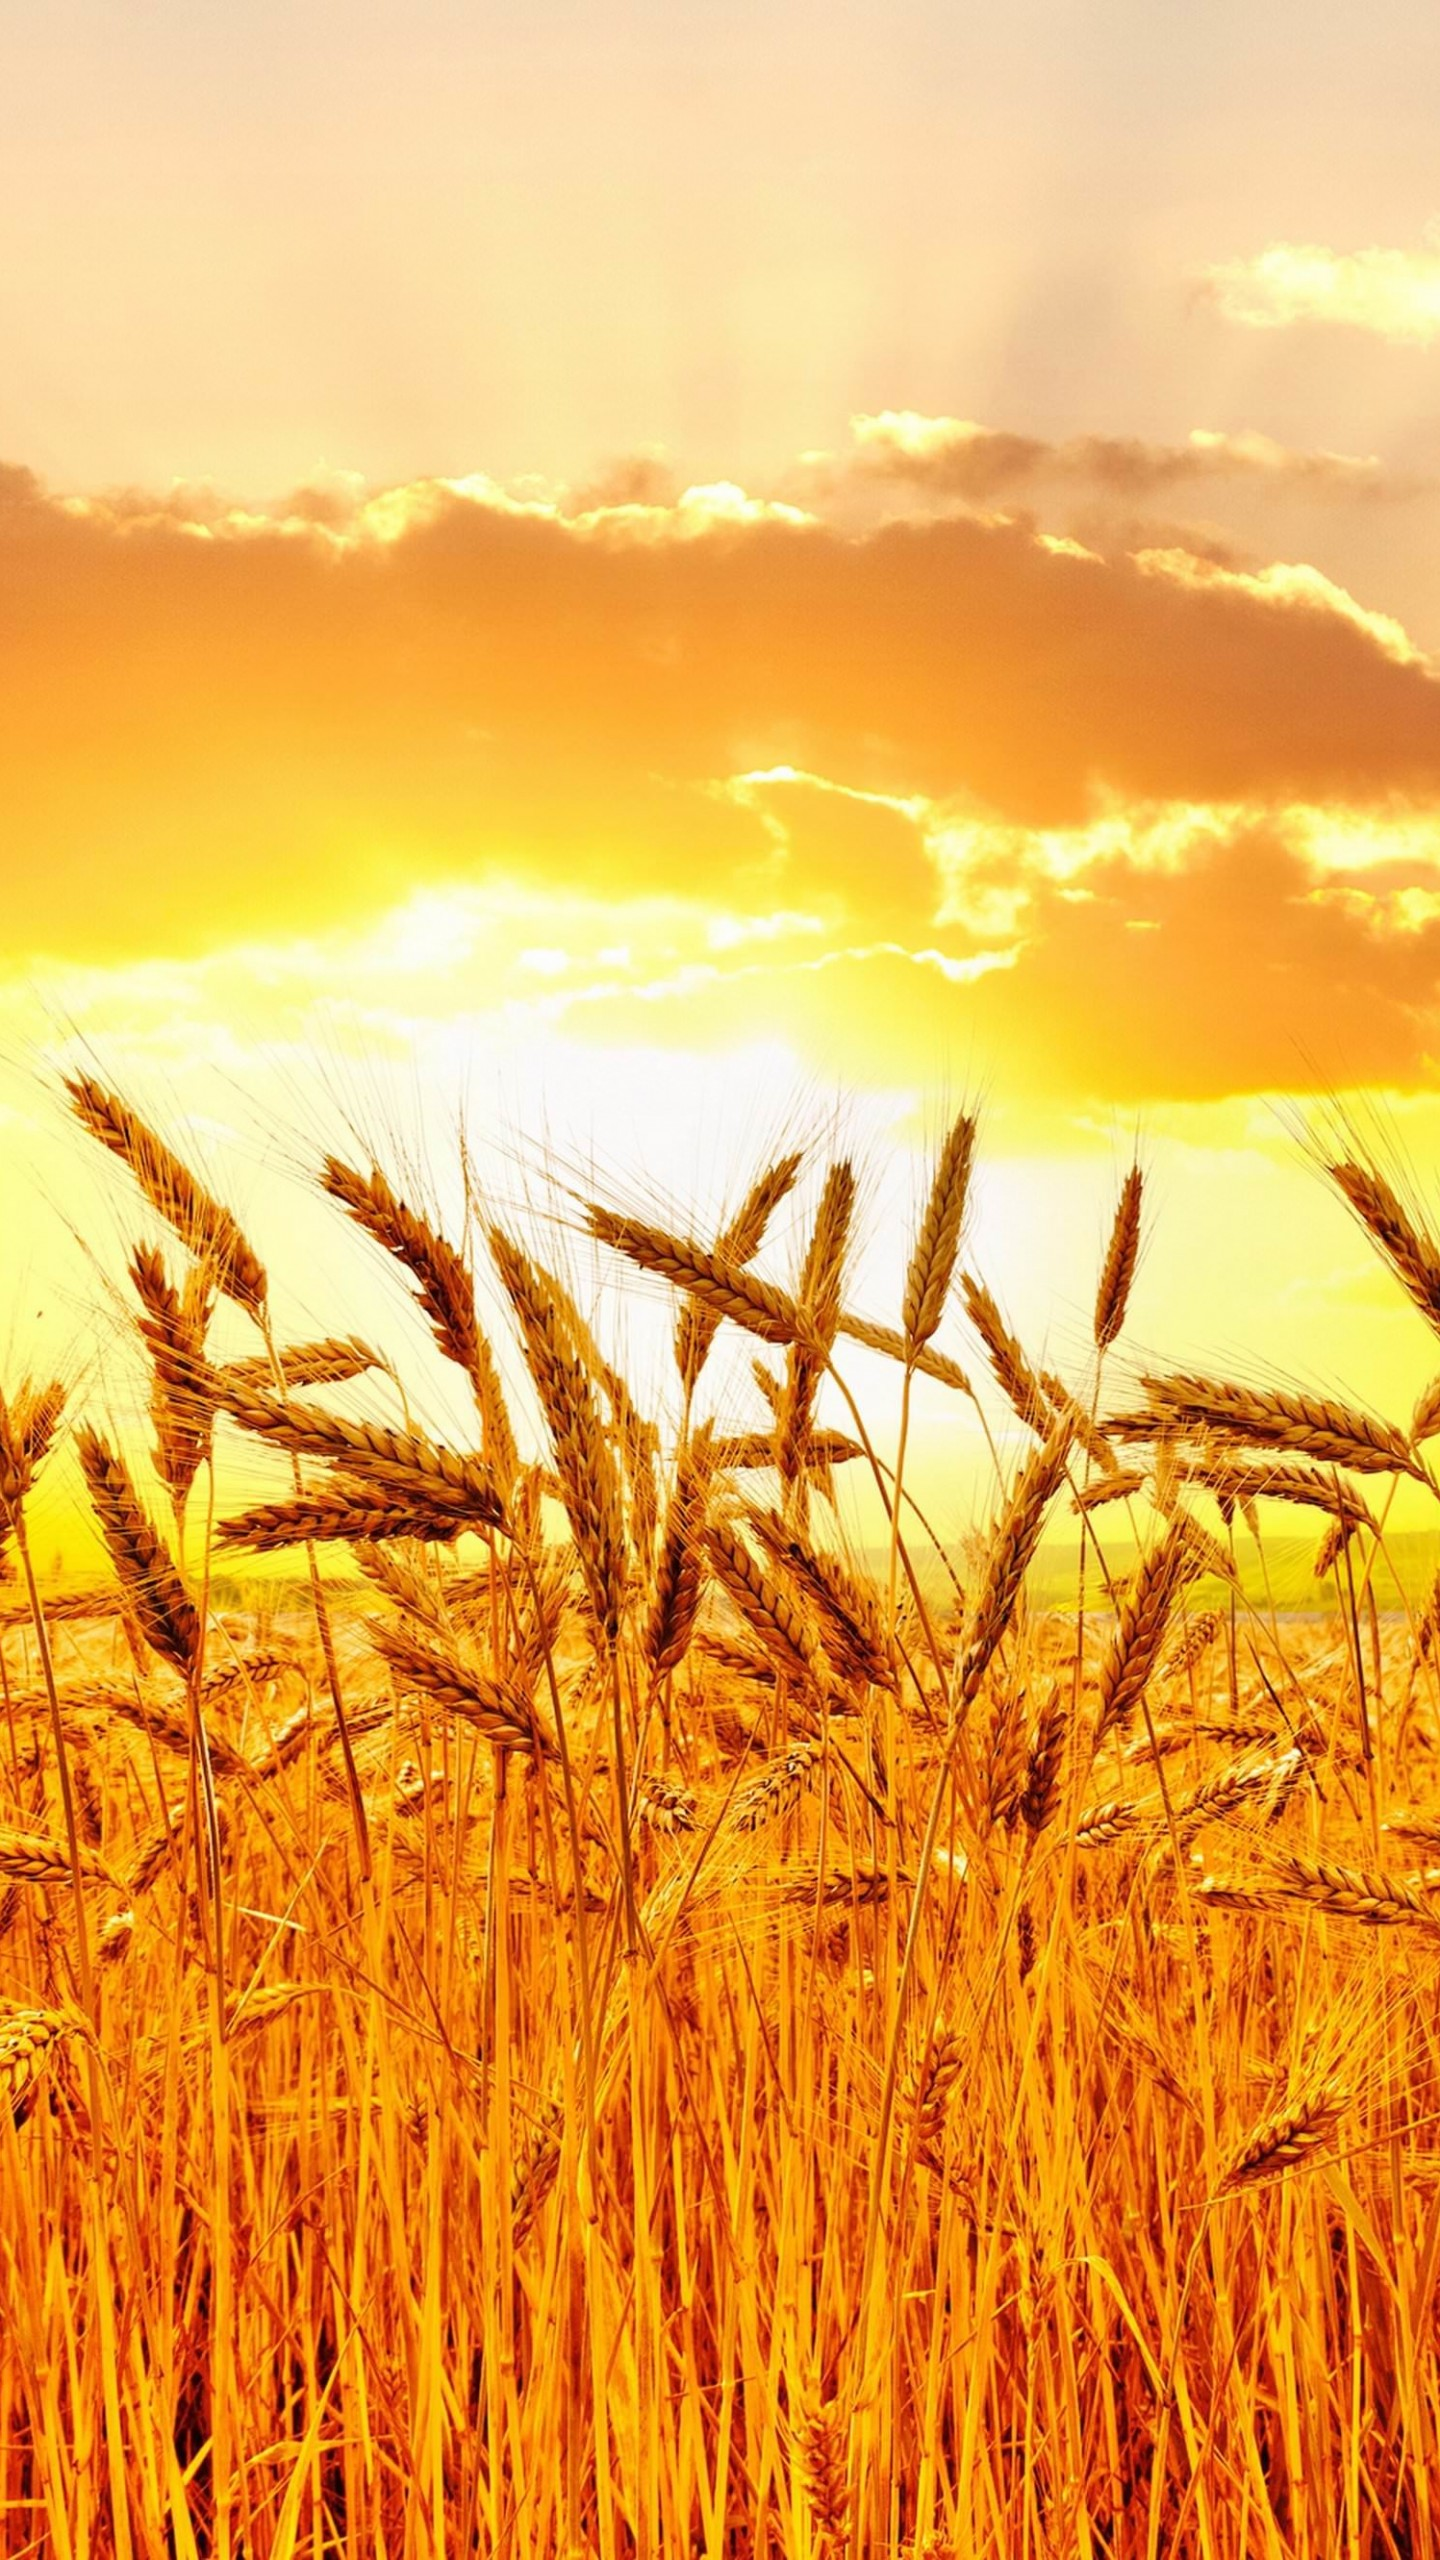 Golden Wheat Field At Sunset Wallpaper for Google Nexus 6